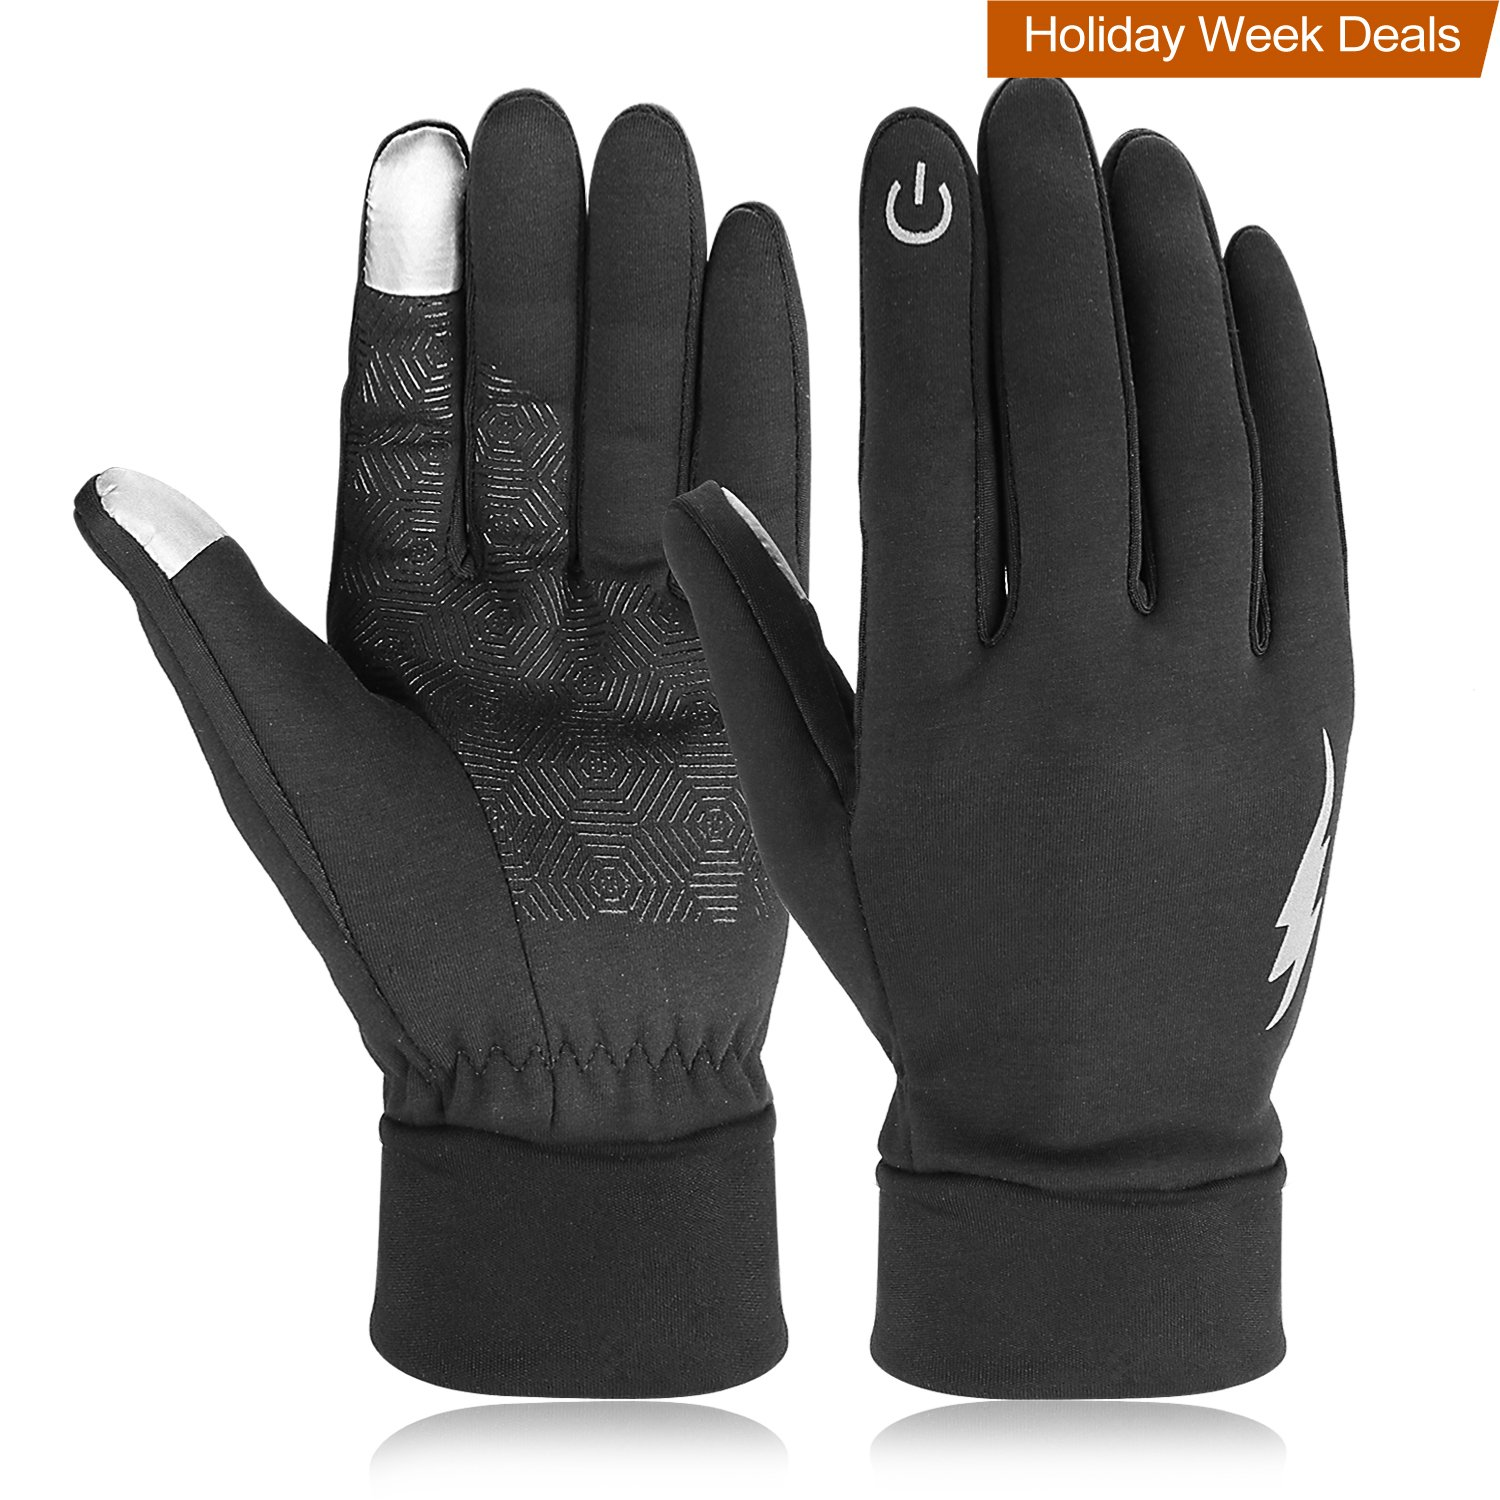 Winter Gloves, HiCool Touch Screen Gloves Driving Gloves Running Cycling Gloves Outdoor Indoor Thermal Warm Gloves for Men and Women (L, Black)